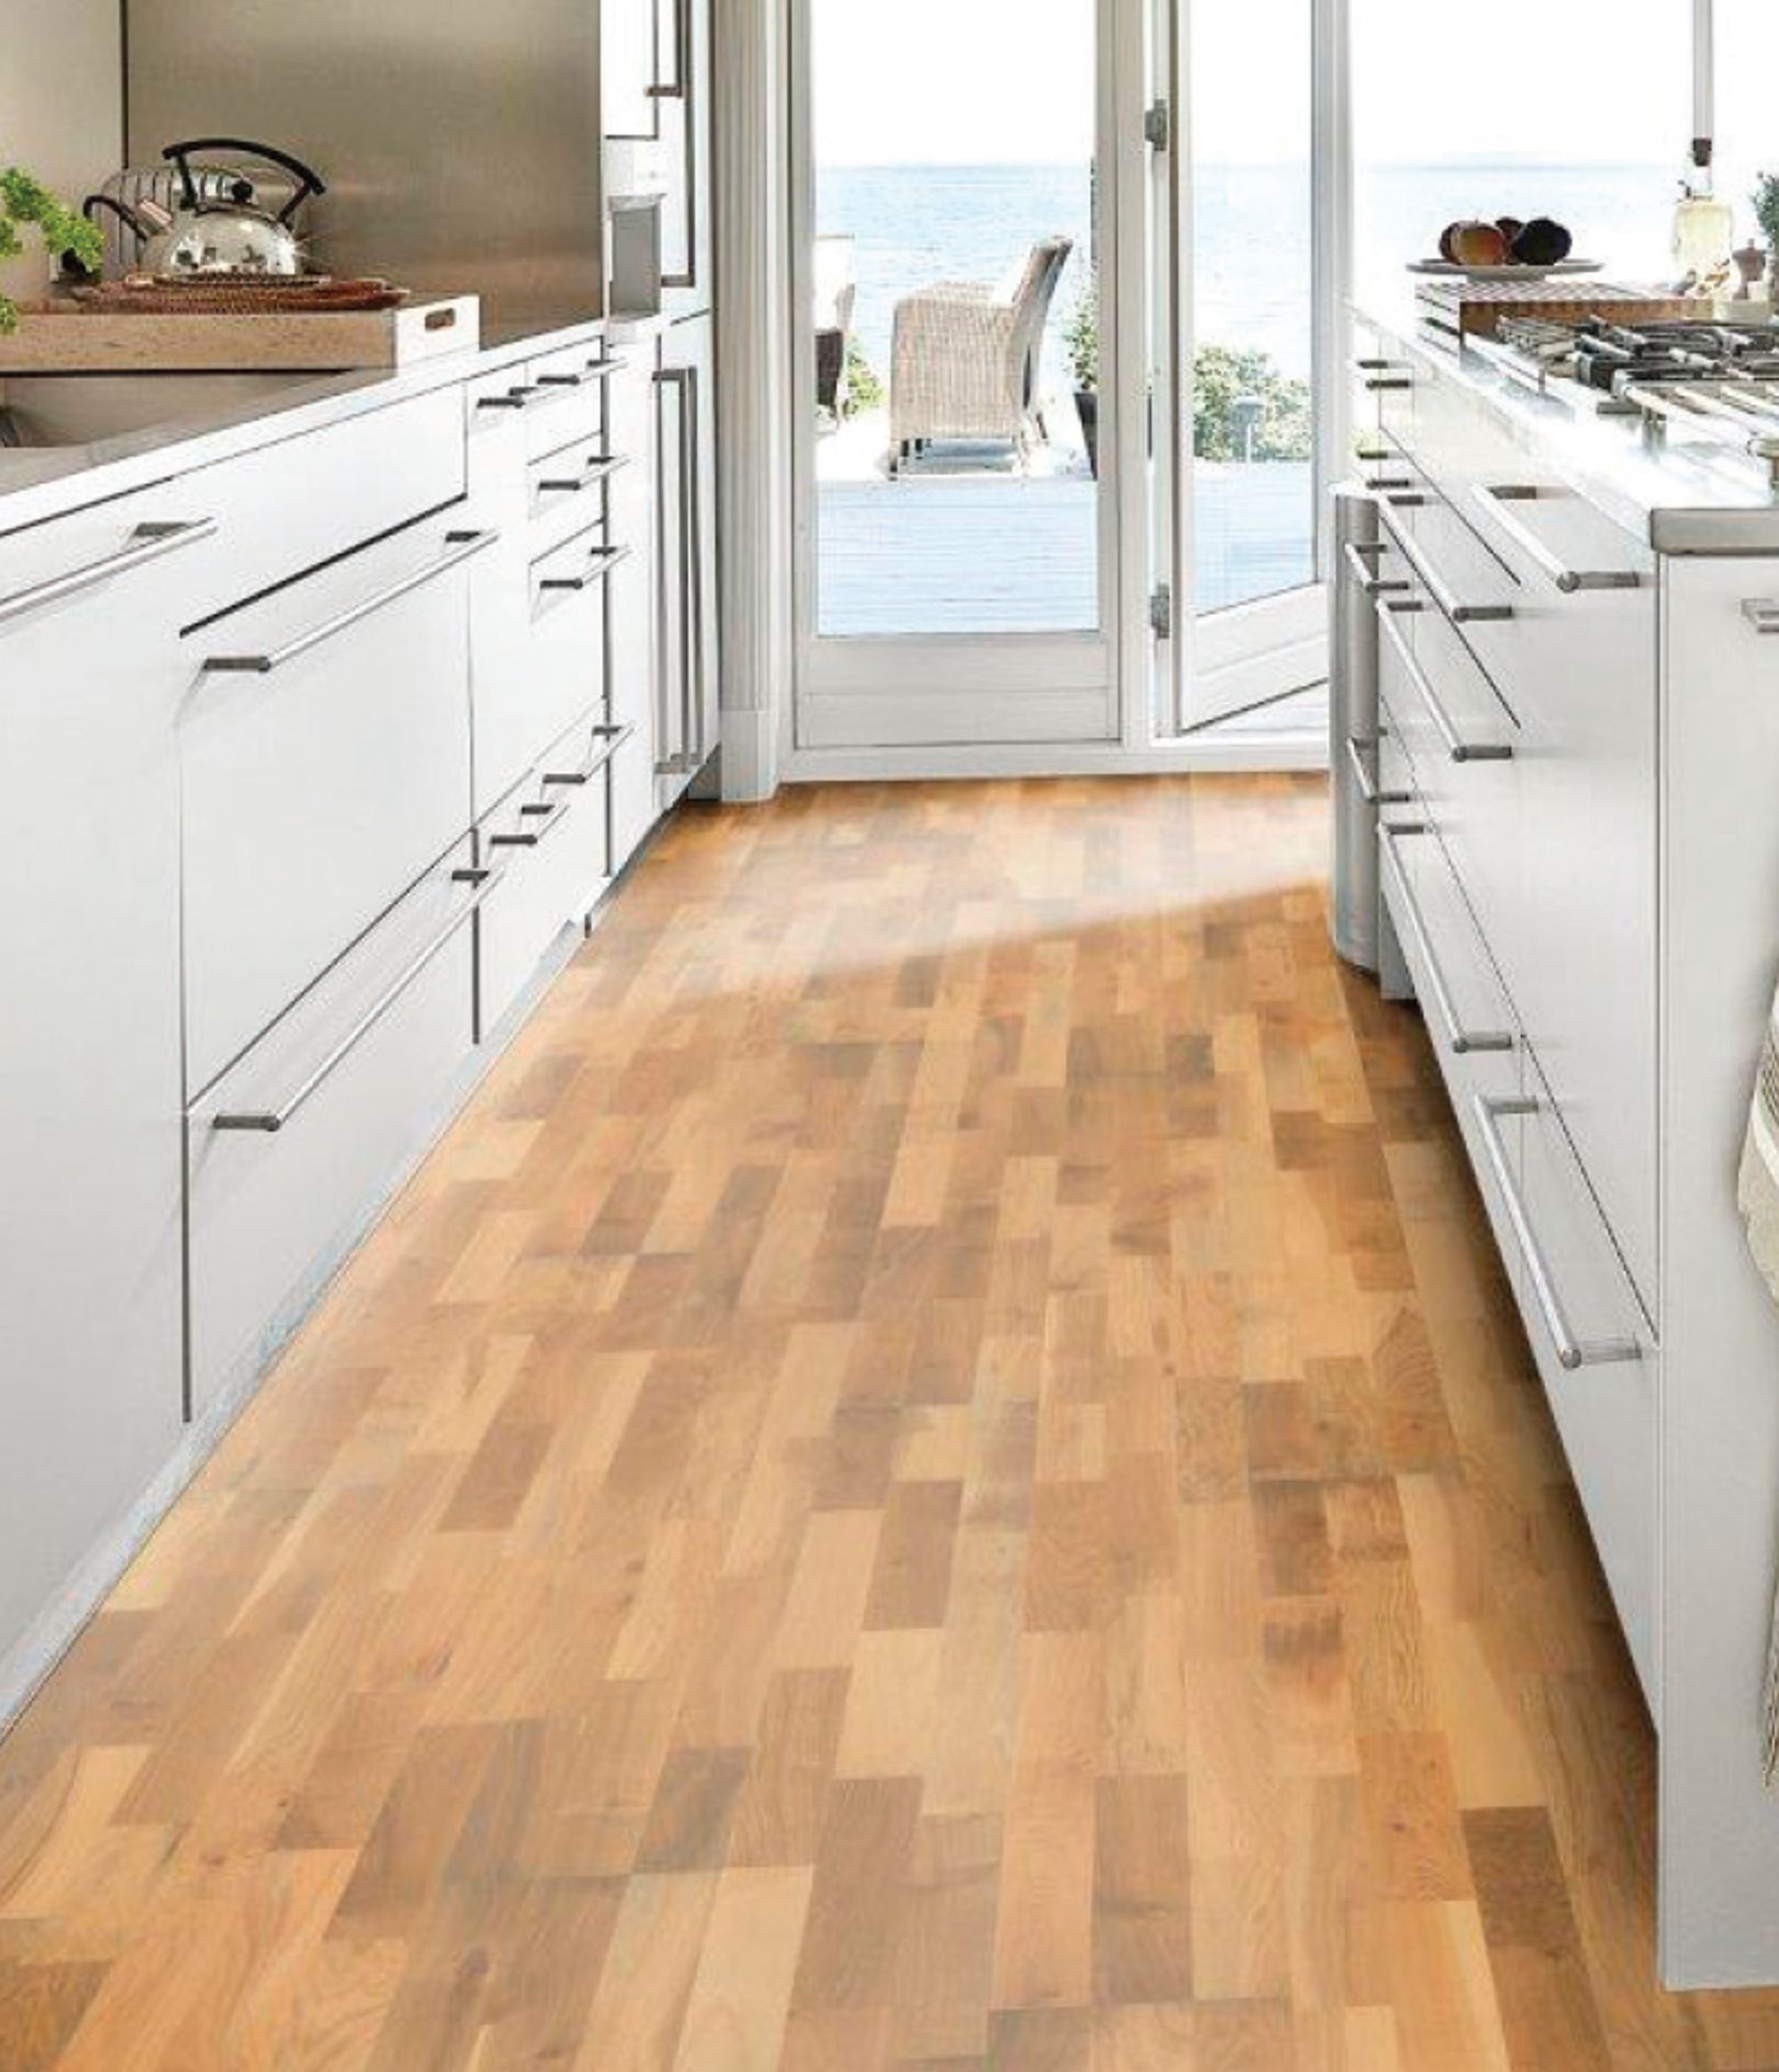 Laminate solid wood and engineered wood flooring timber engineered flooring baanklon Choice Image